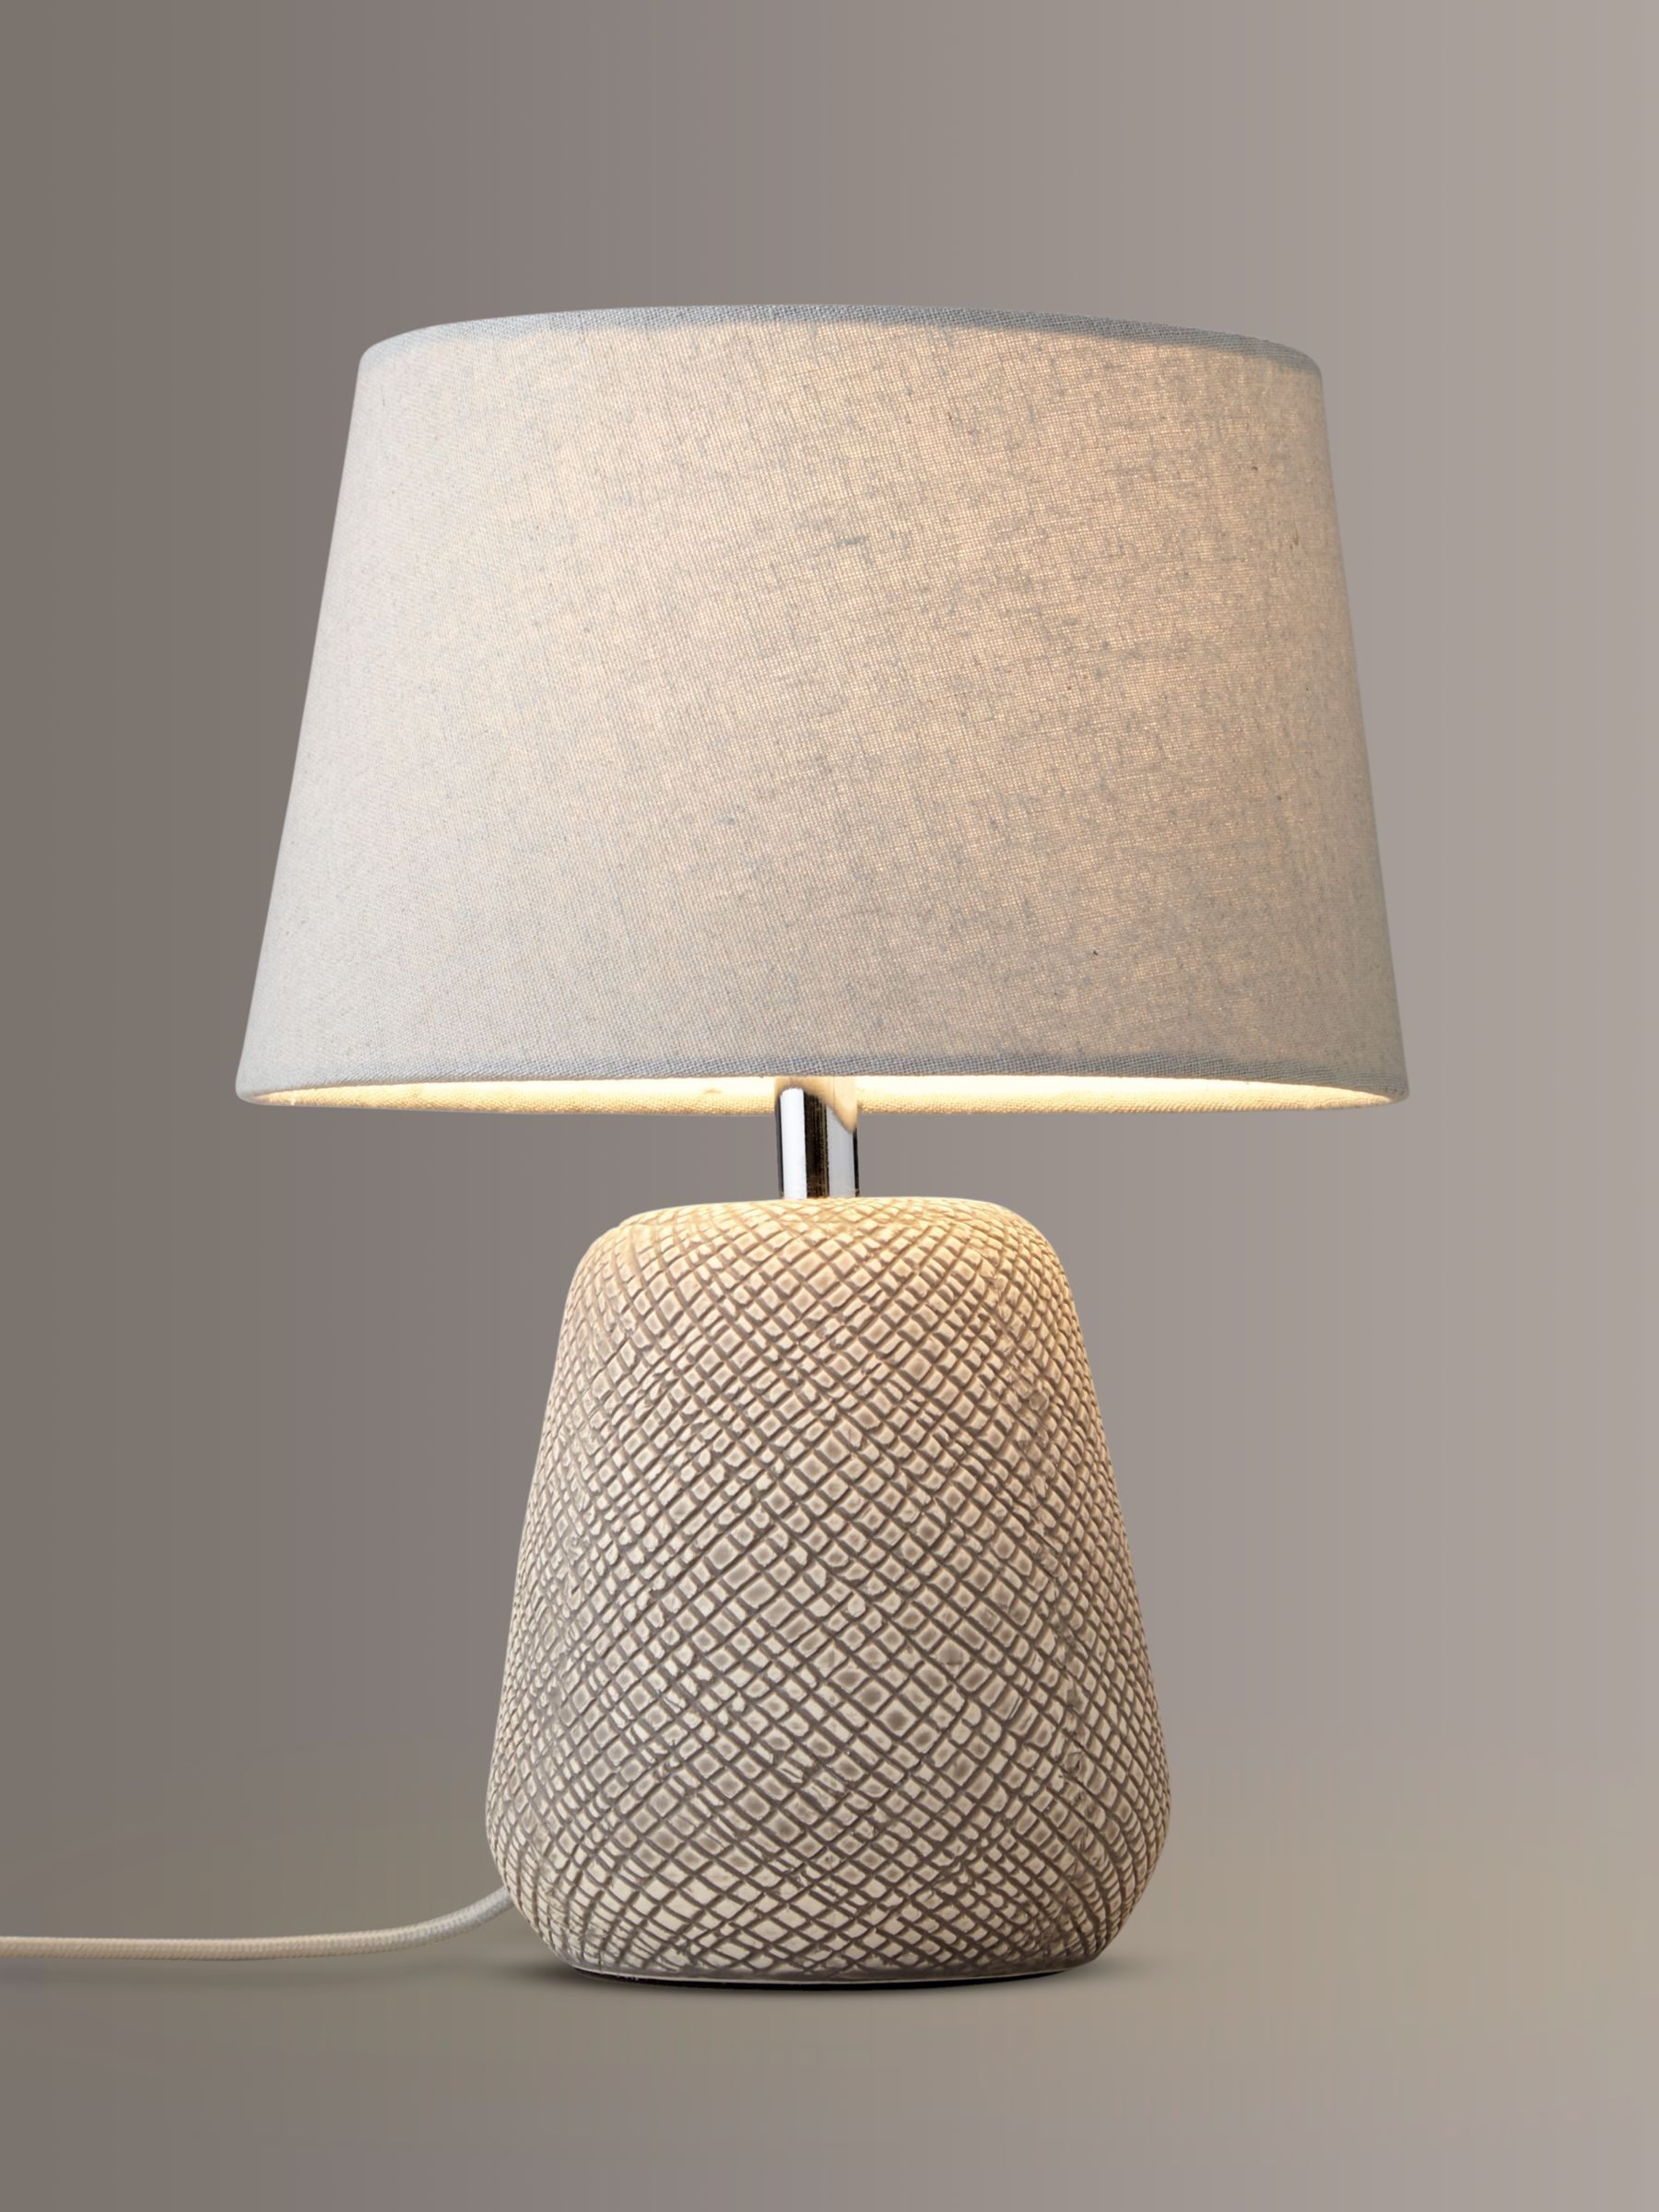 John Lewis & Partners Iona Small Table Lamp (With images ...